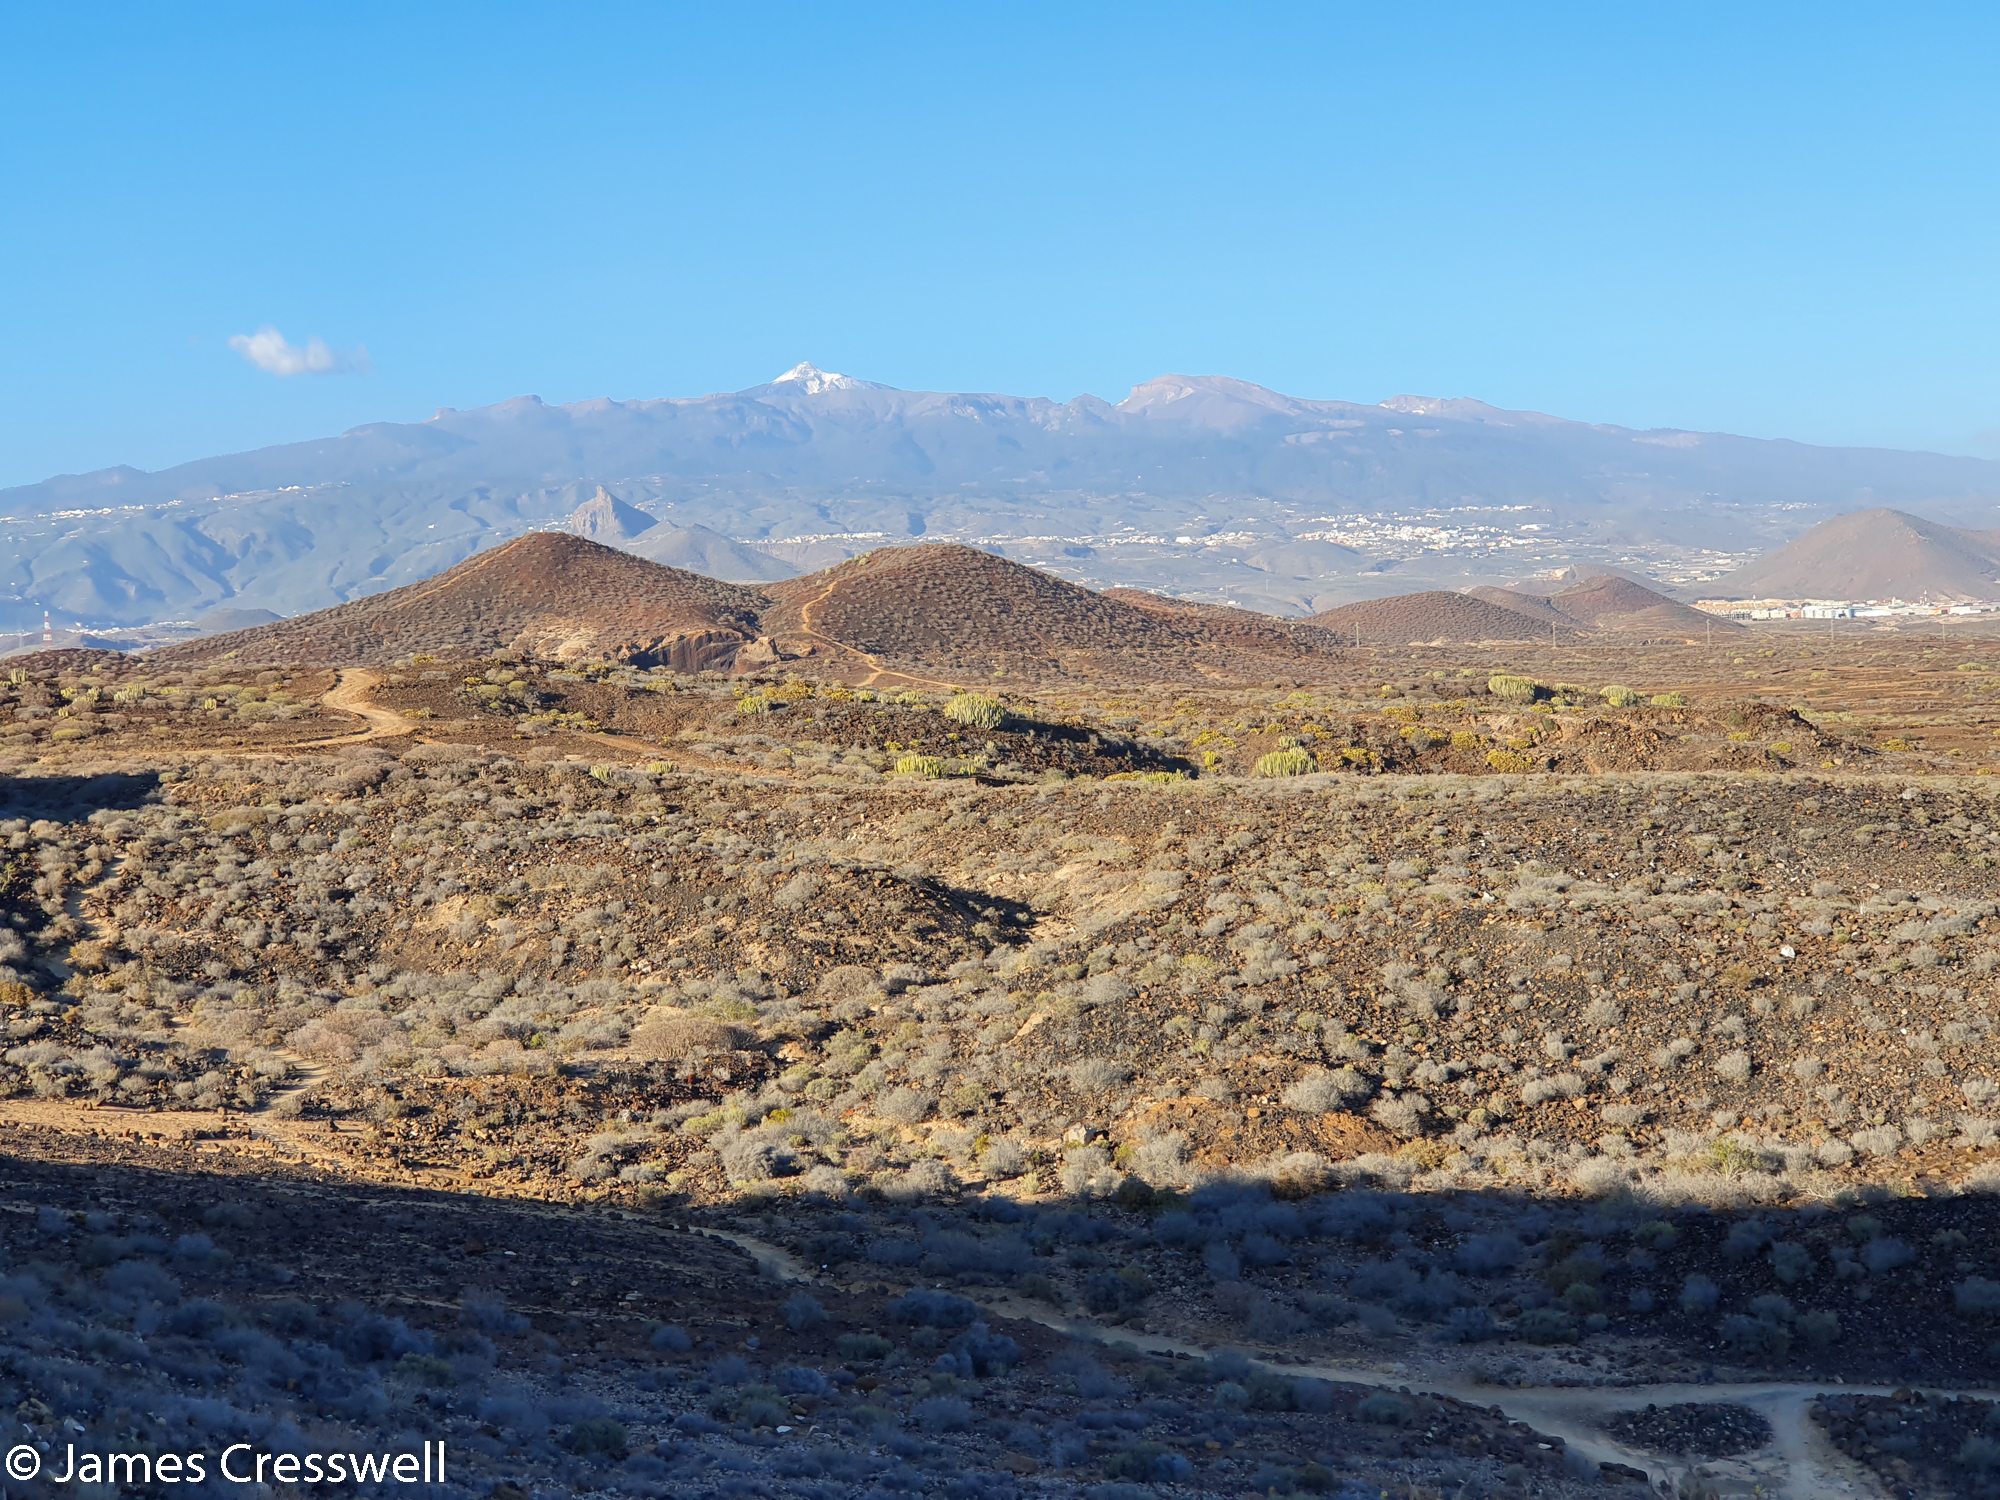 Landscape view with volcanic cones